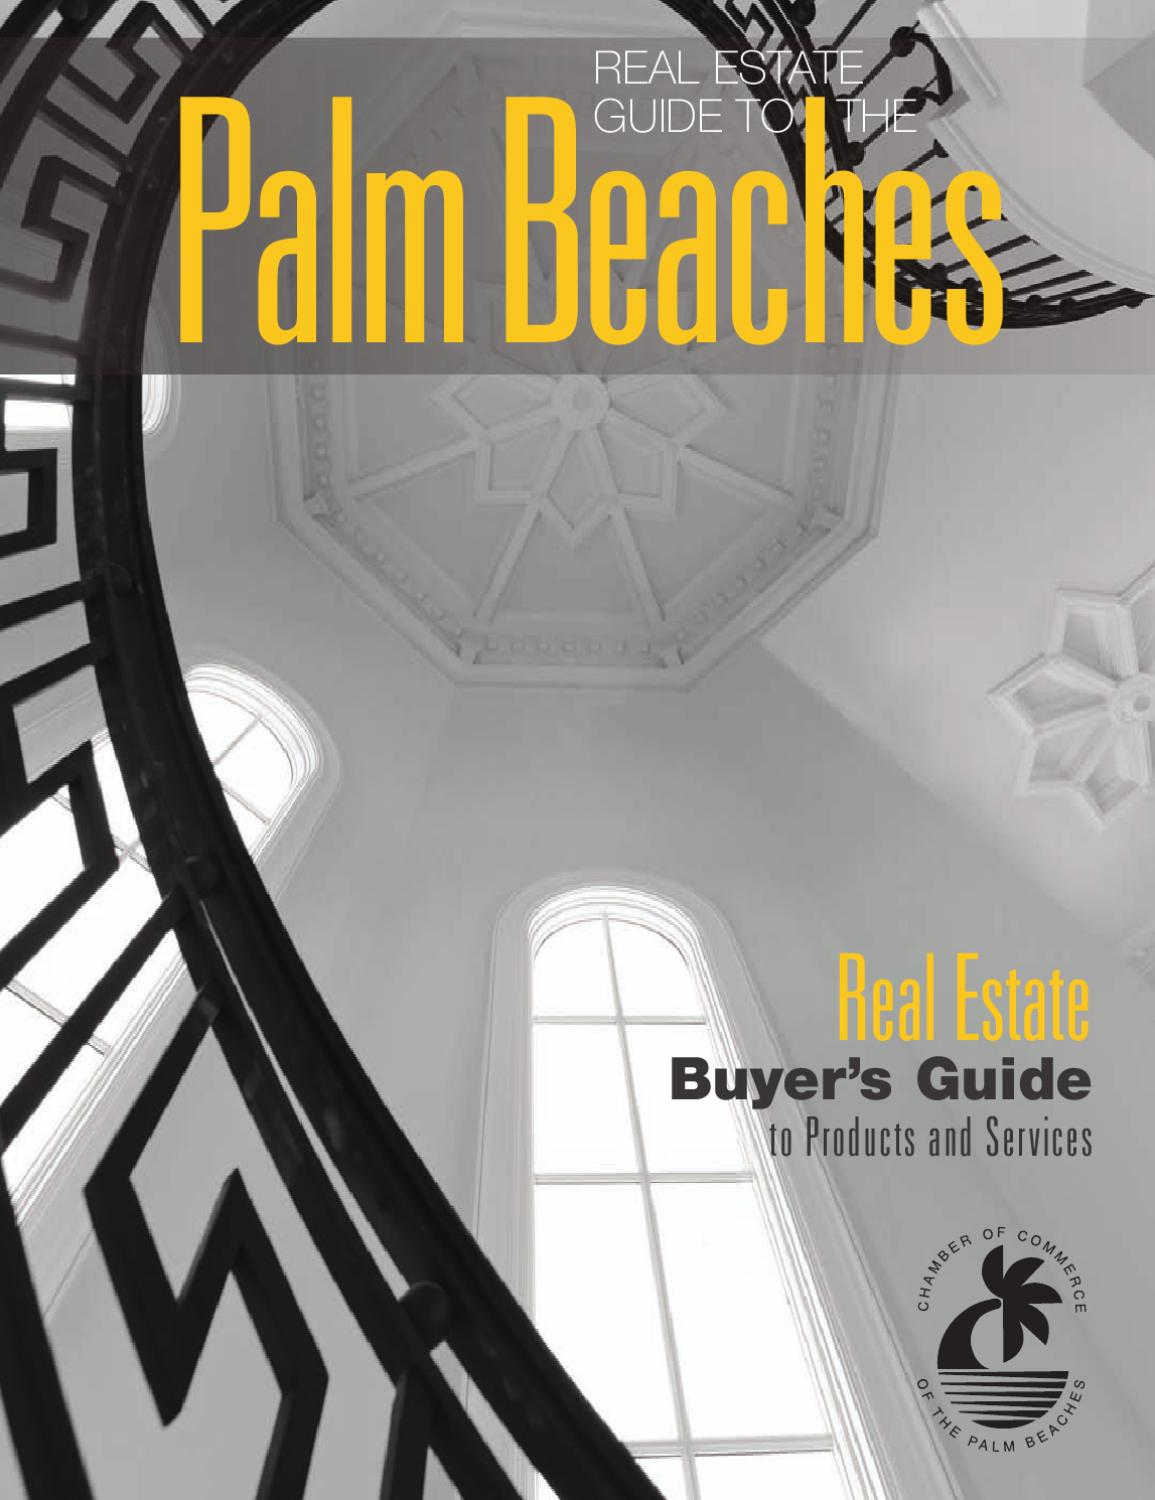 n door ralng nteror ralng desgns ron.htm real estate guide to the palm beaches 2011 by passport  real estate guide to the palm beaches